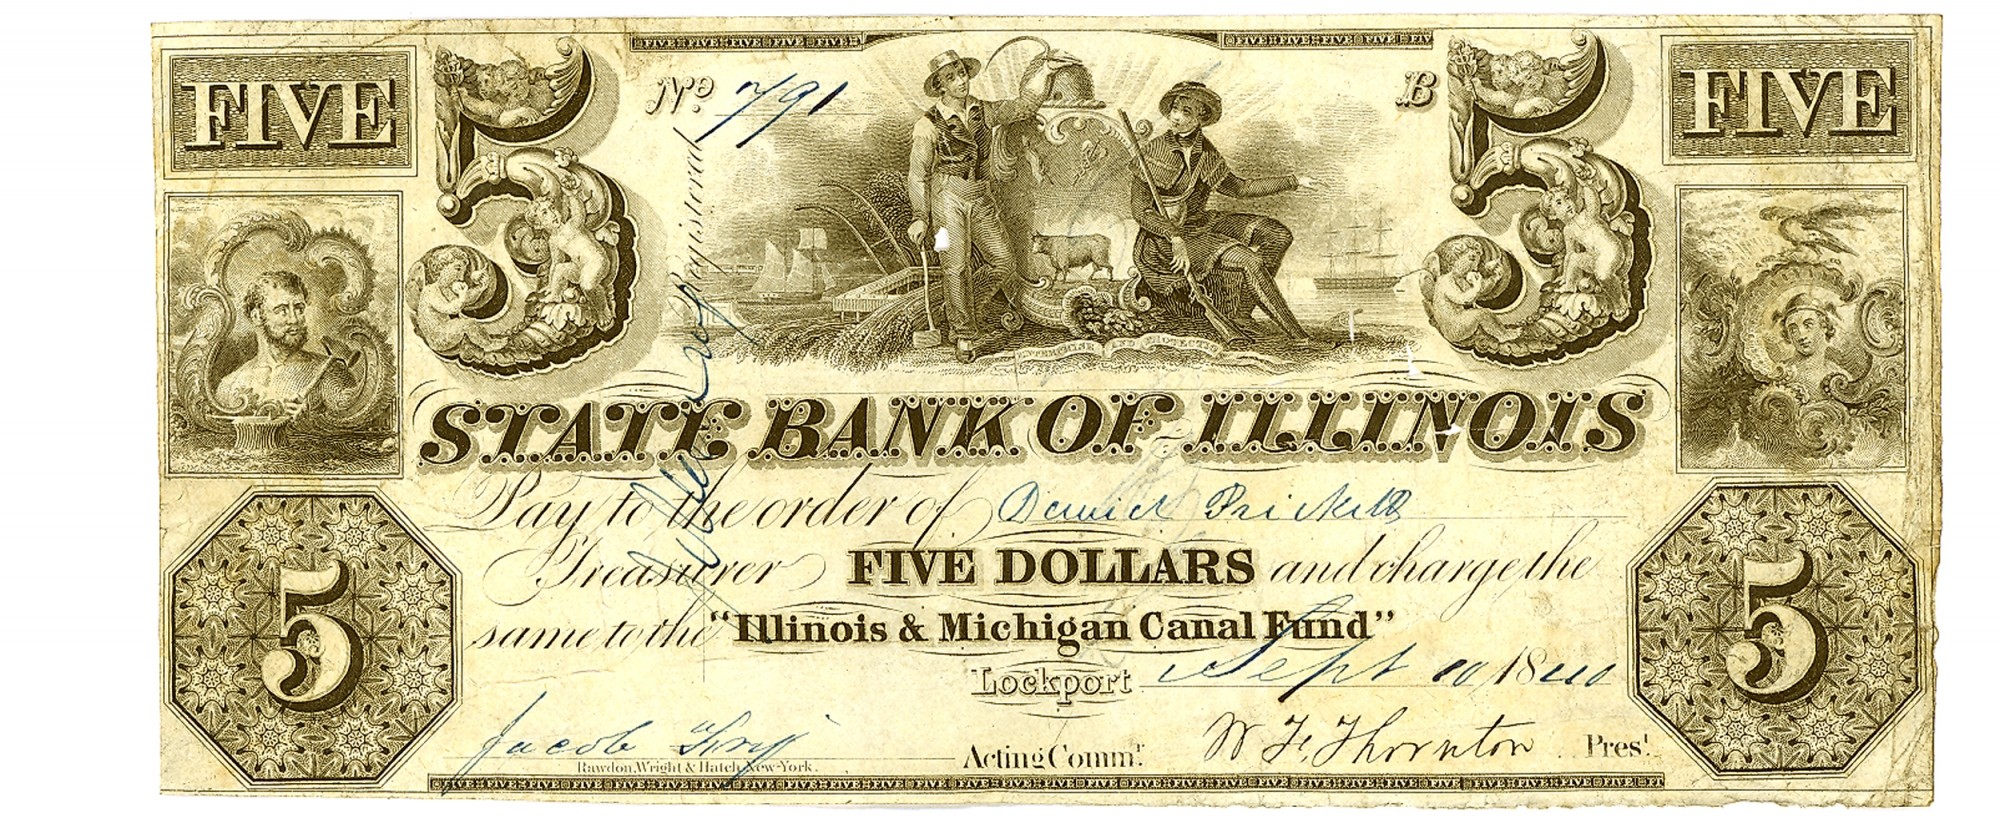 THE STATE BANK OF ILLINOIS LOCKPORT $5 NOTE